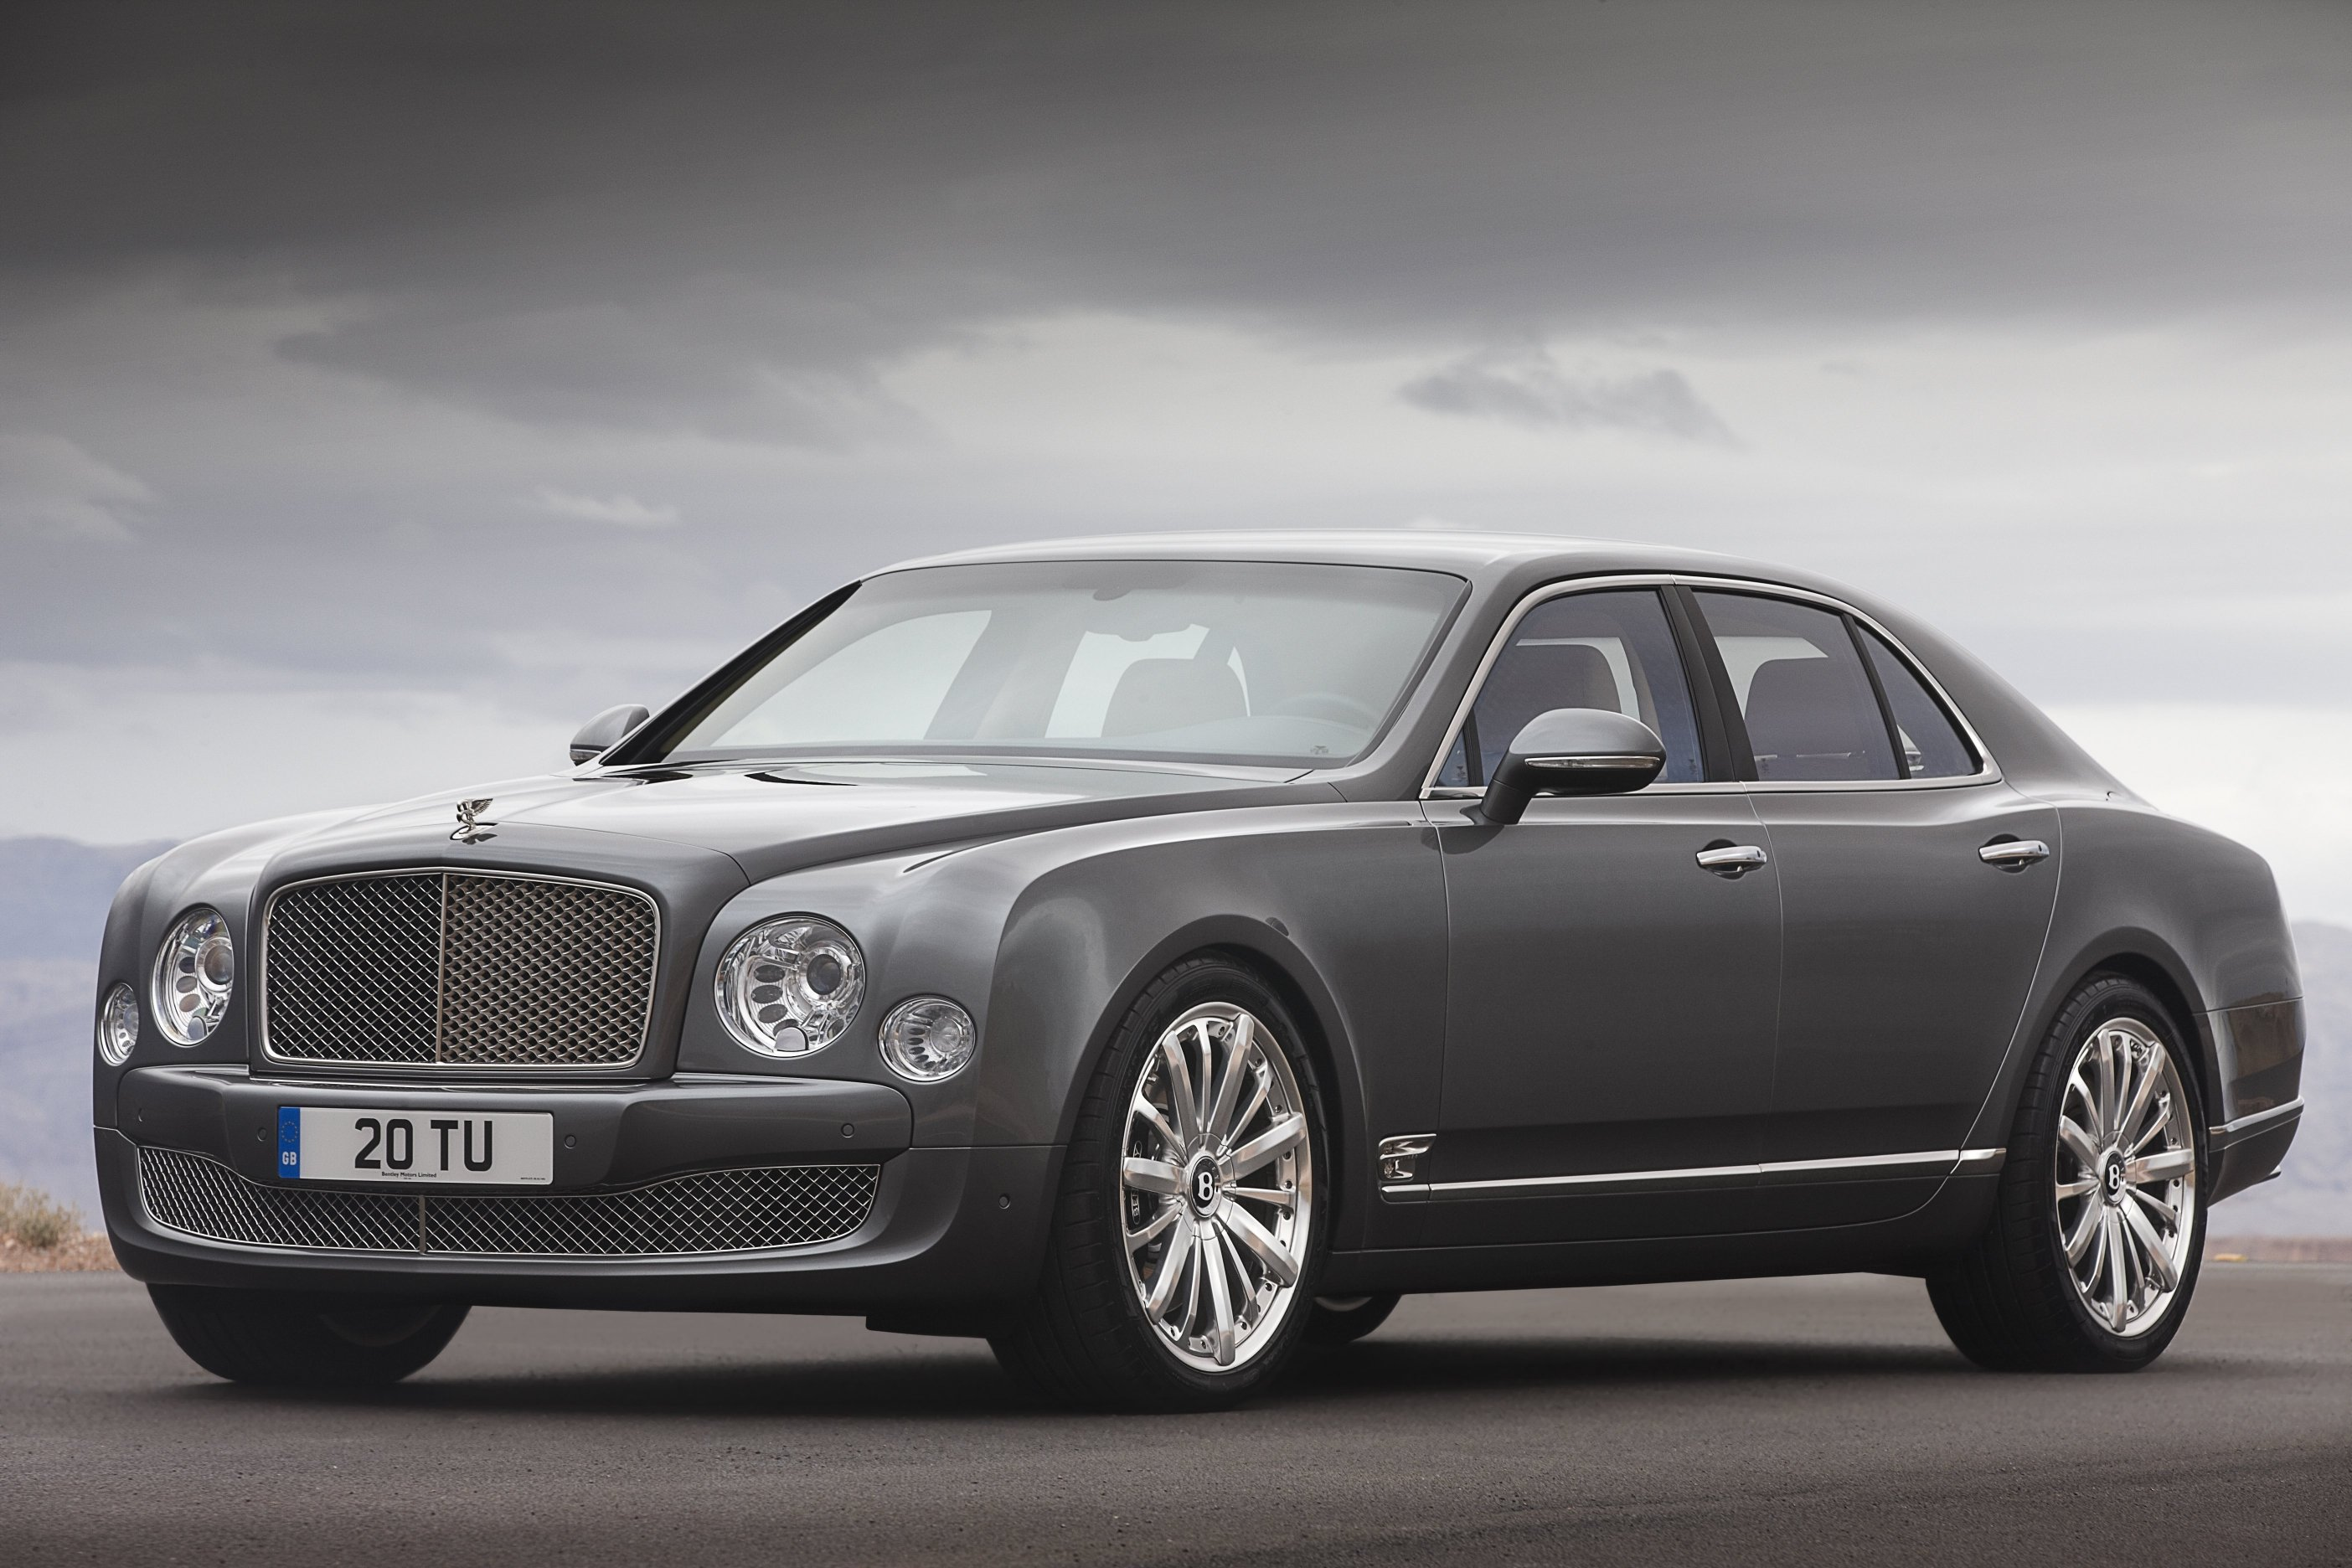 2013 Bentley Mulsane #21